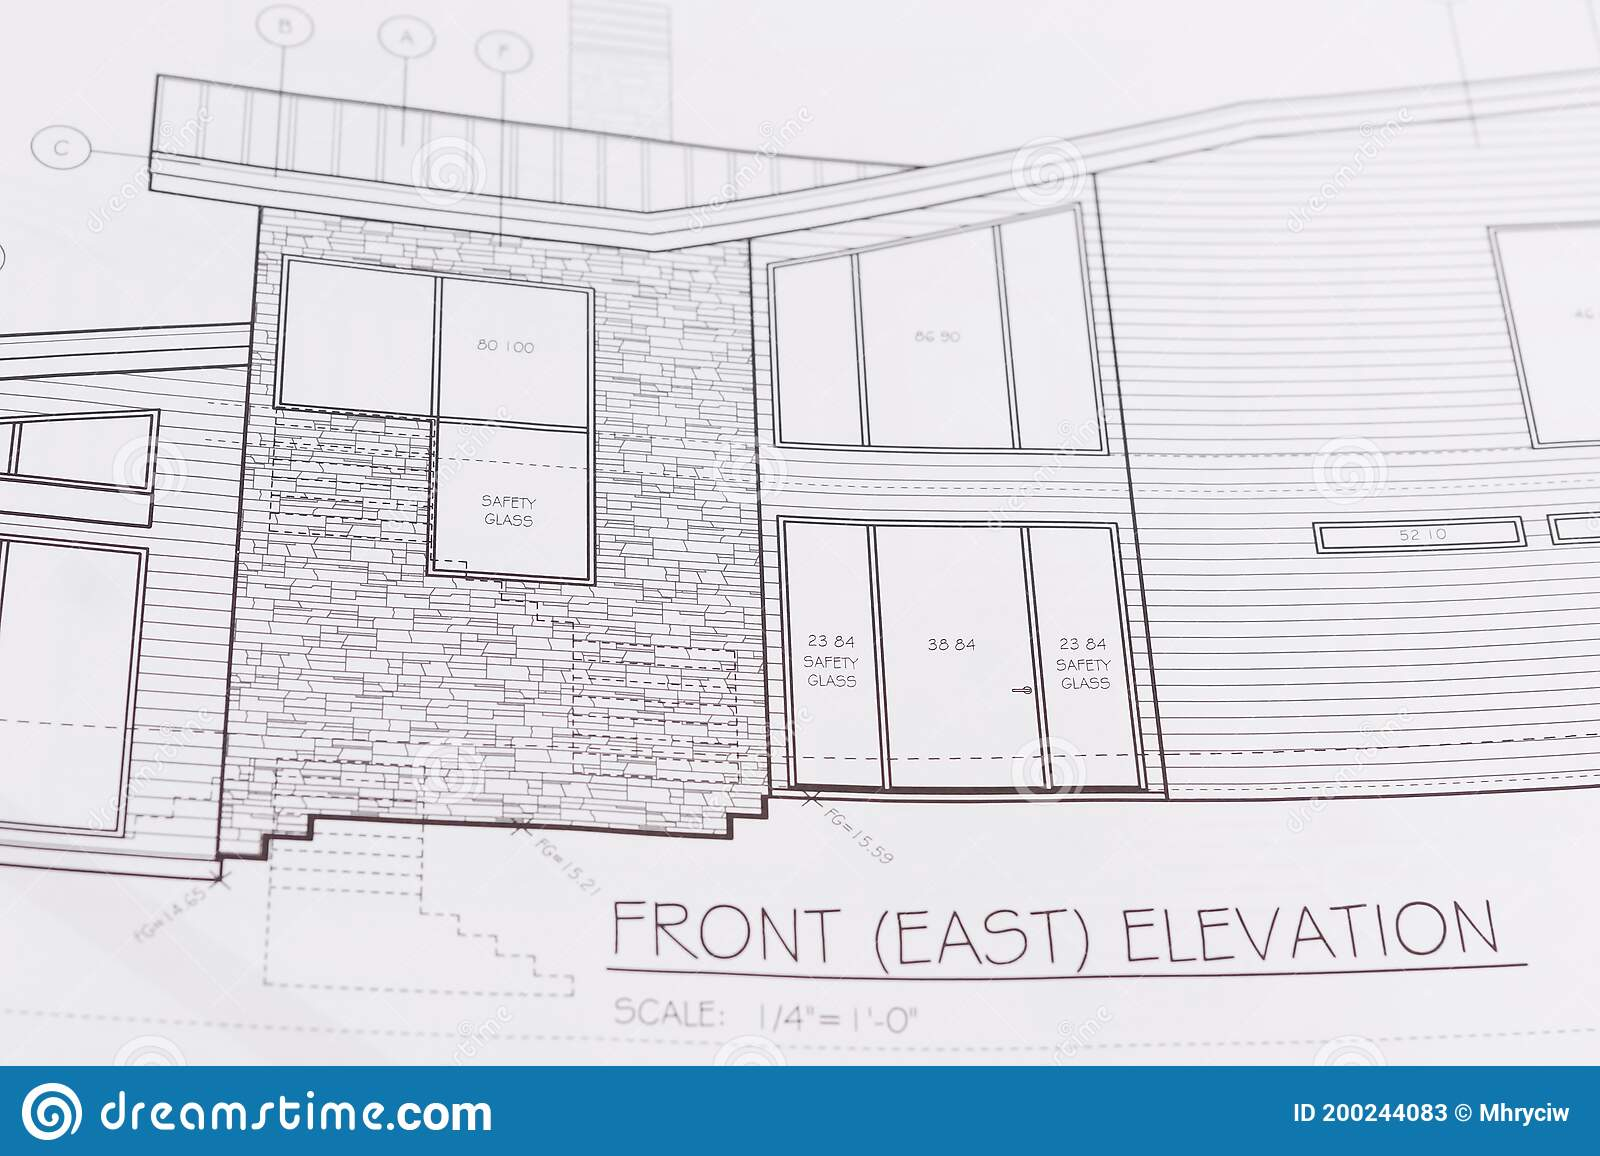 home house exterior construction plan drawing details architectural plans showing wall sections siding custom designed 200244083